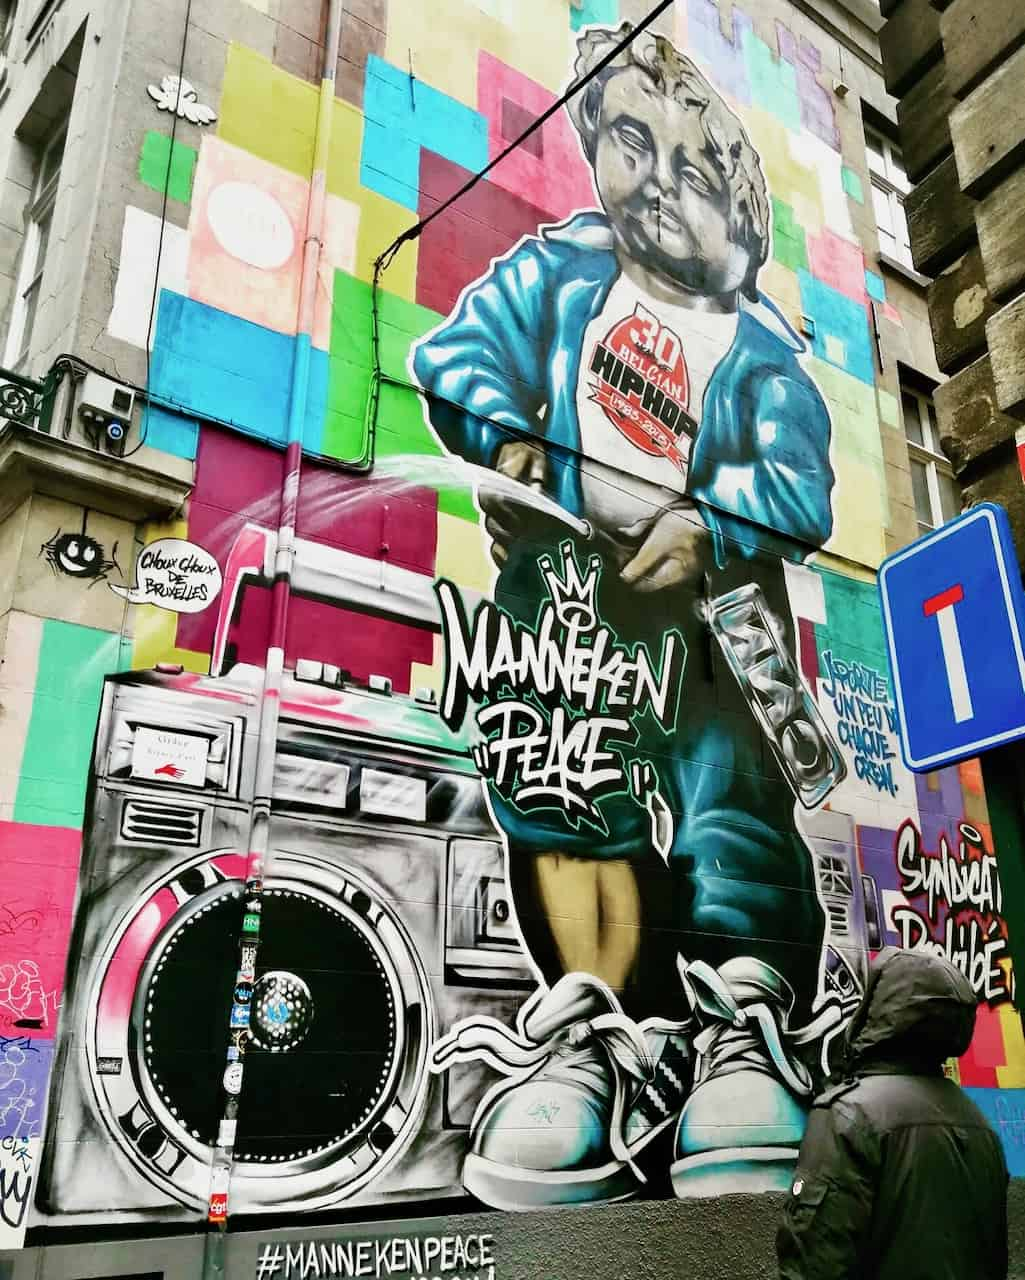 manneken-peace-brussels-street-art-photo